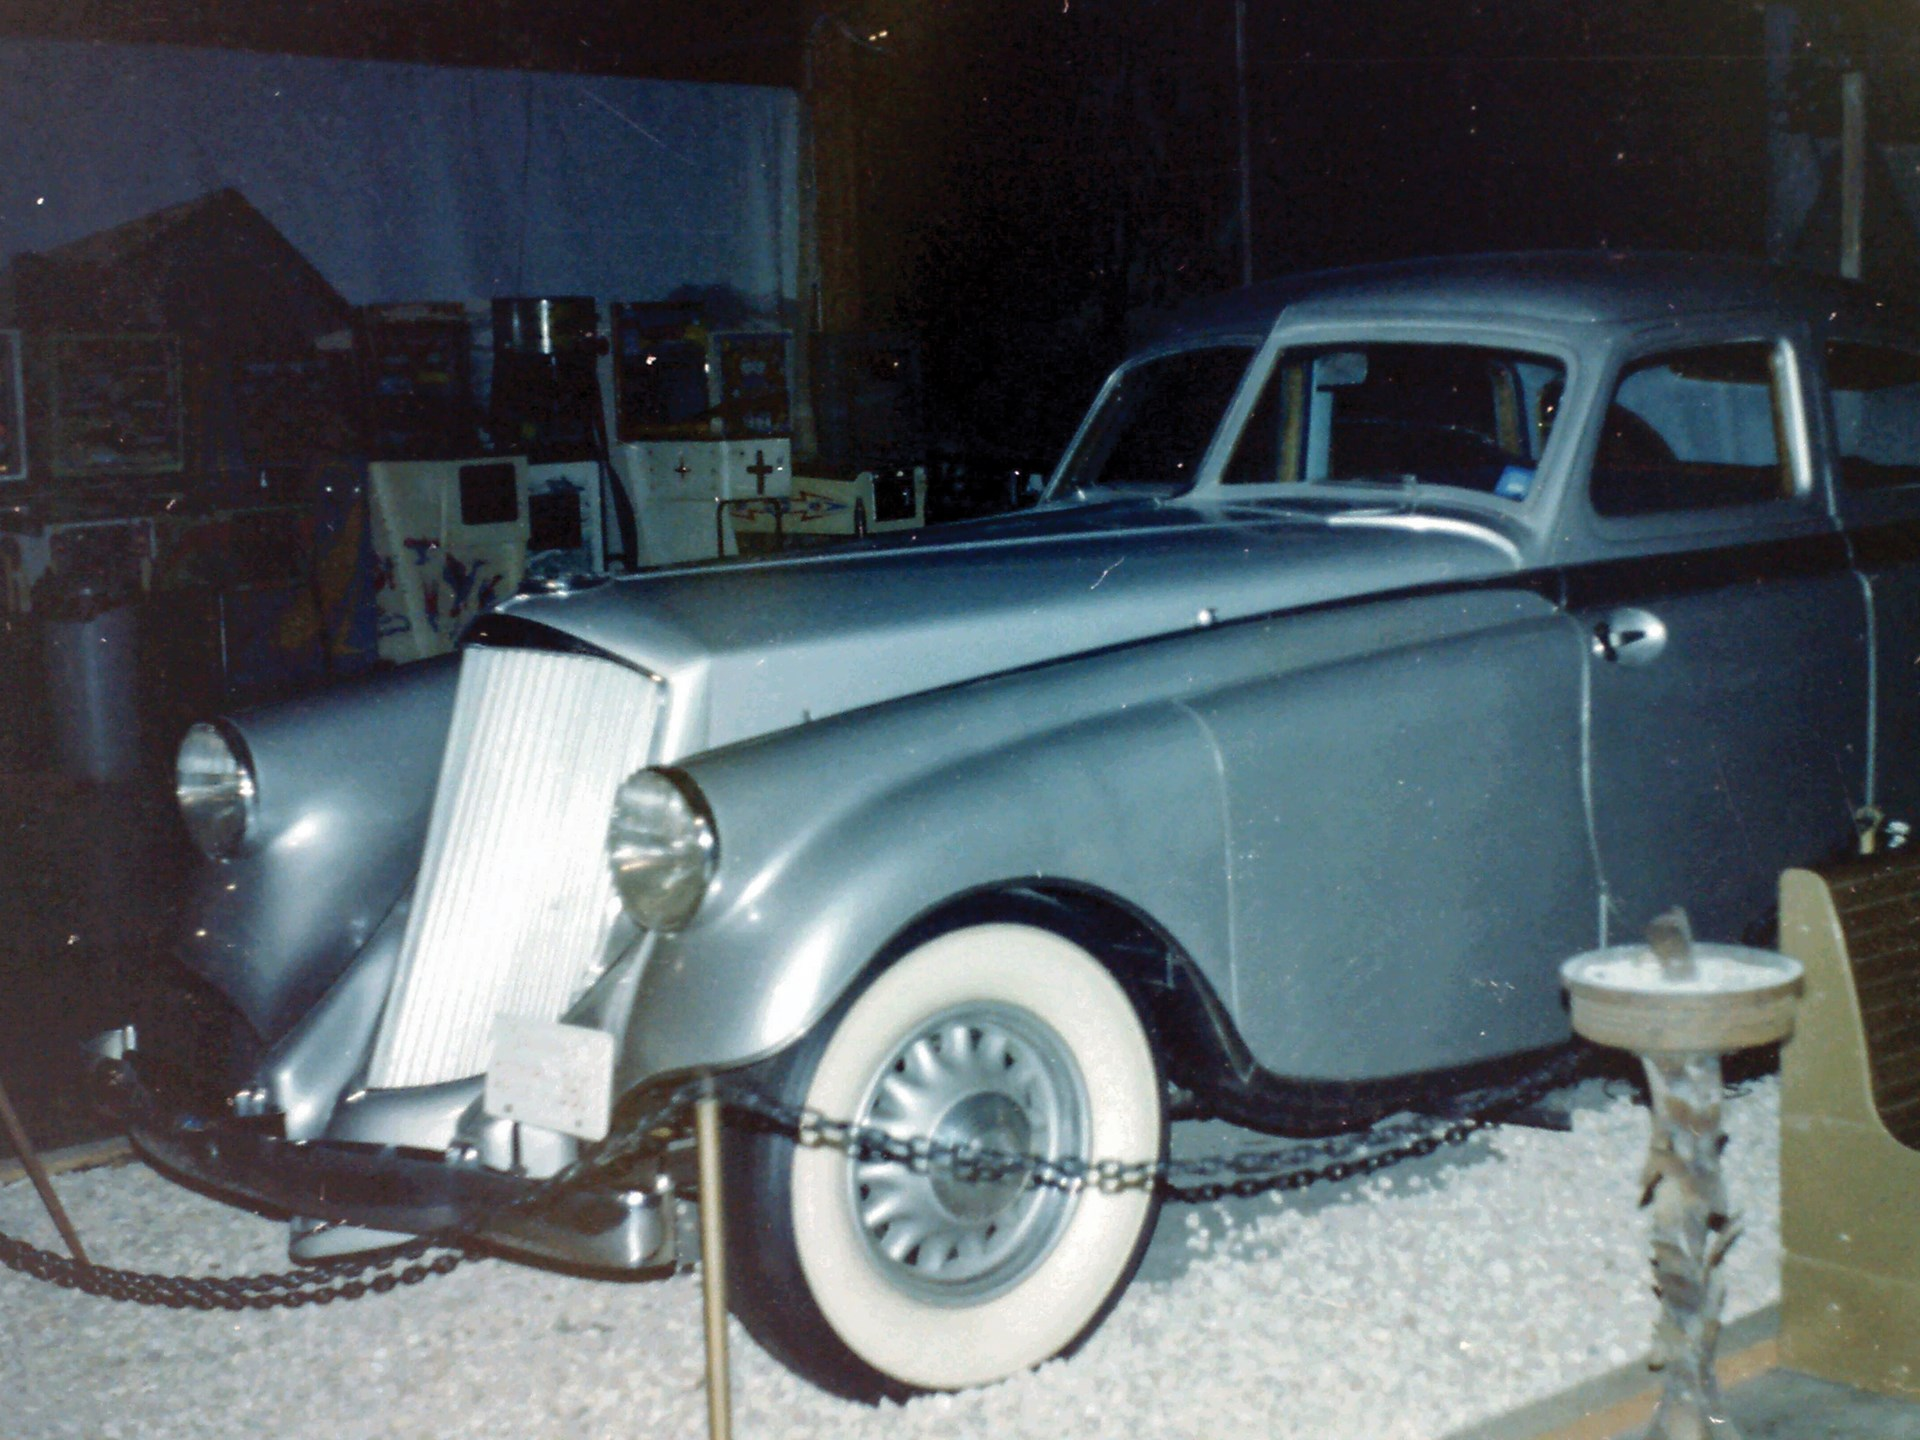 The first Silver Arrow as it appeared on exhibit at Movieworld in the 1970s.